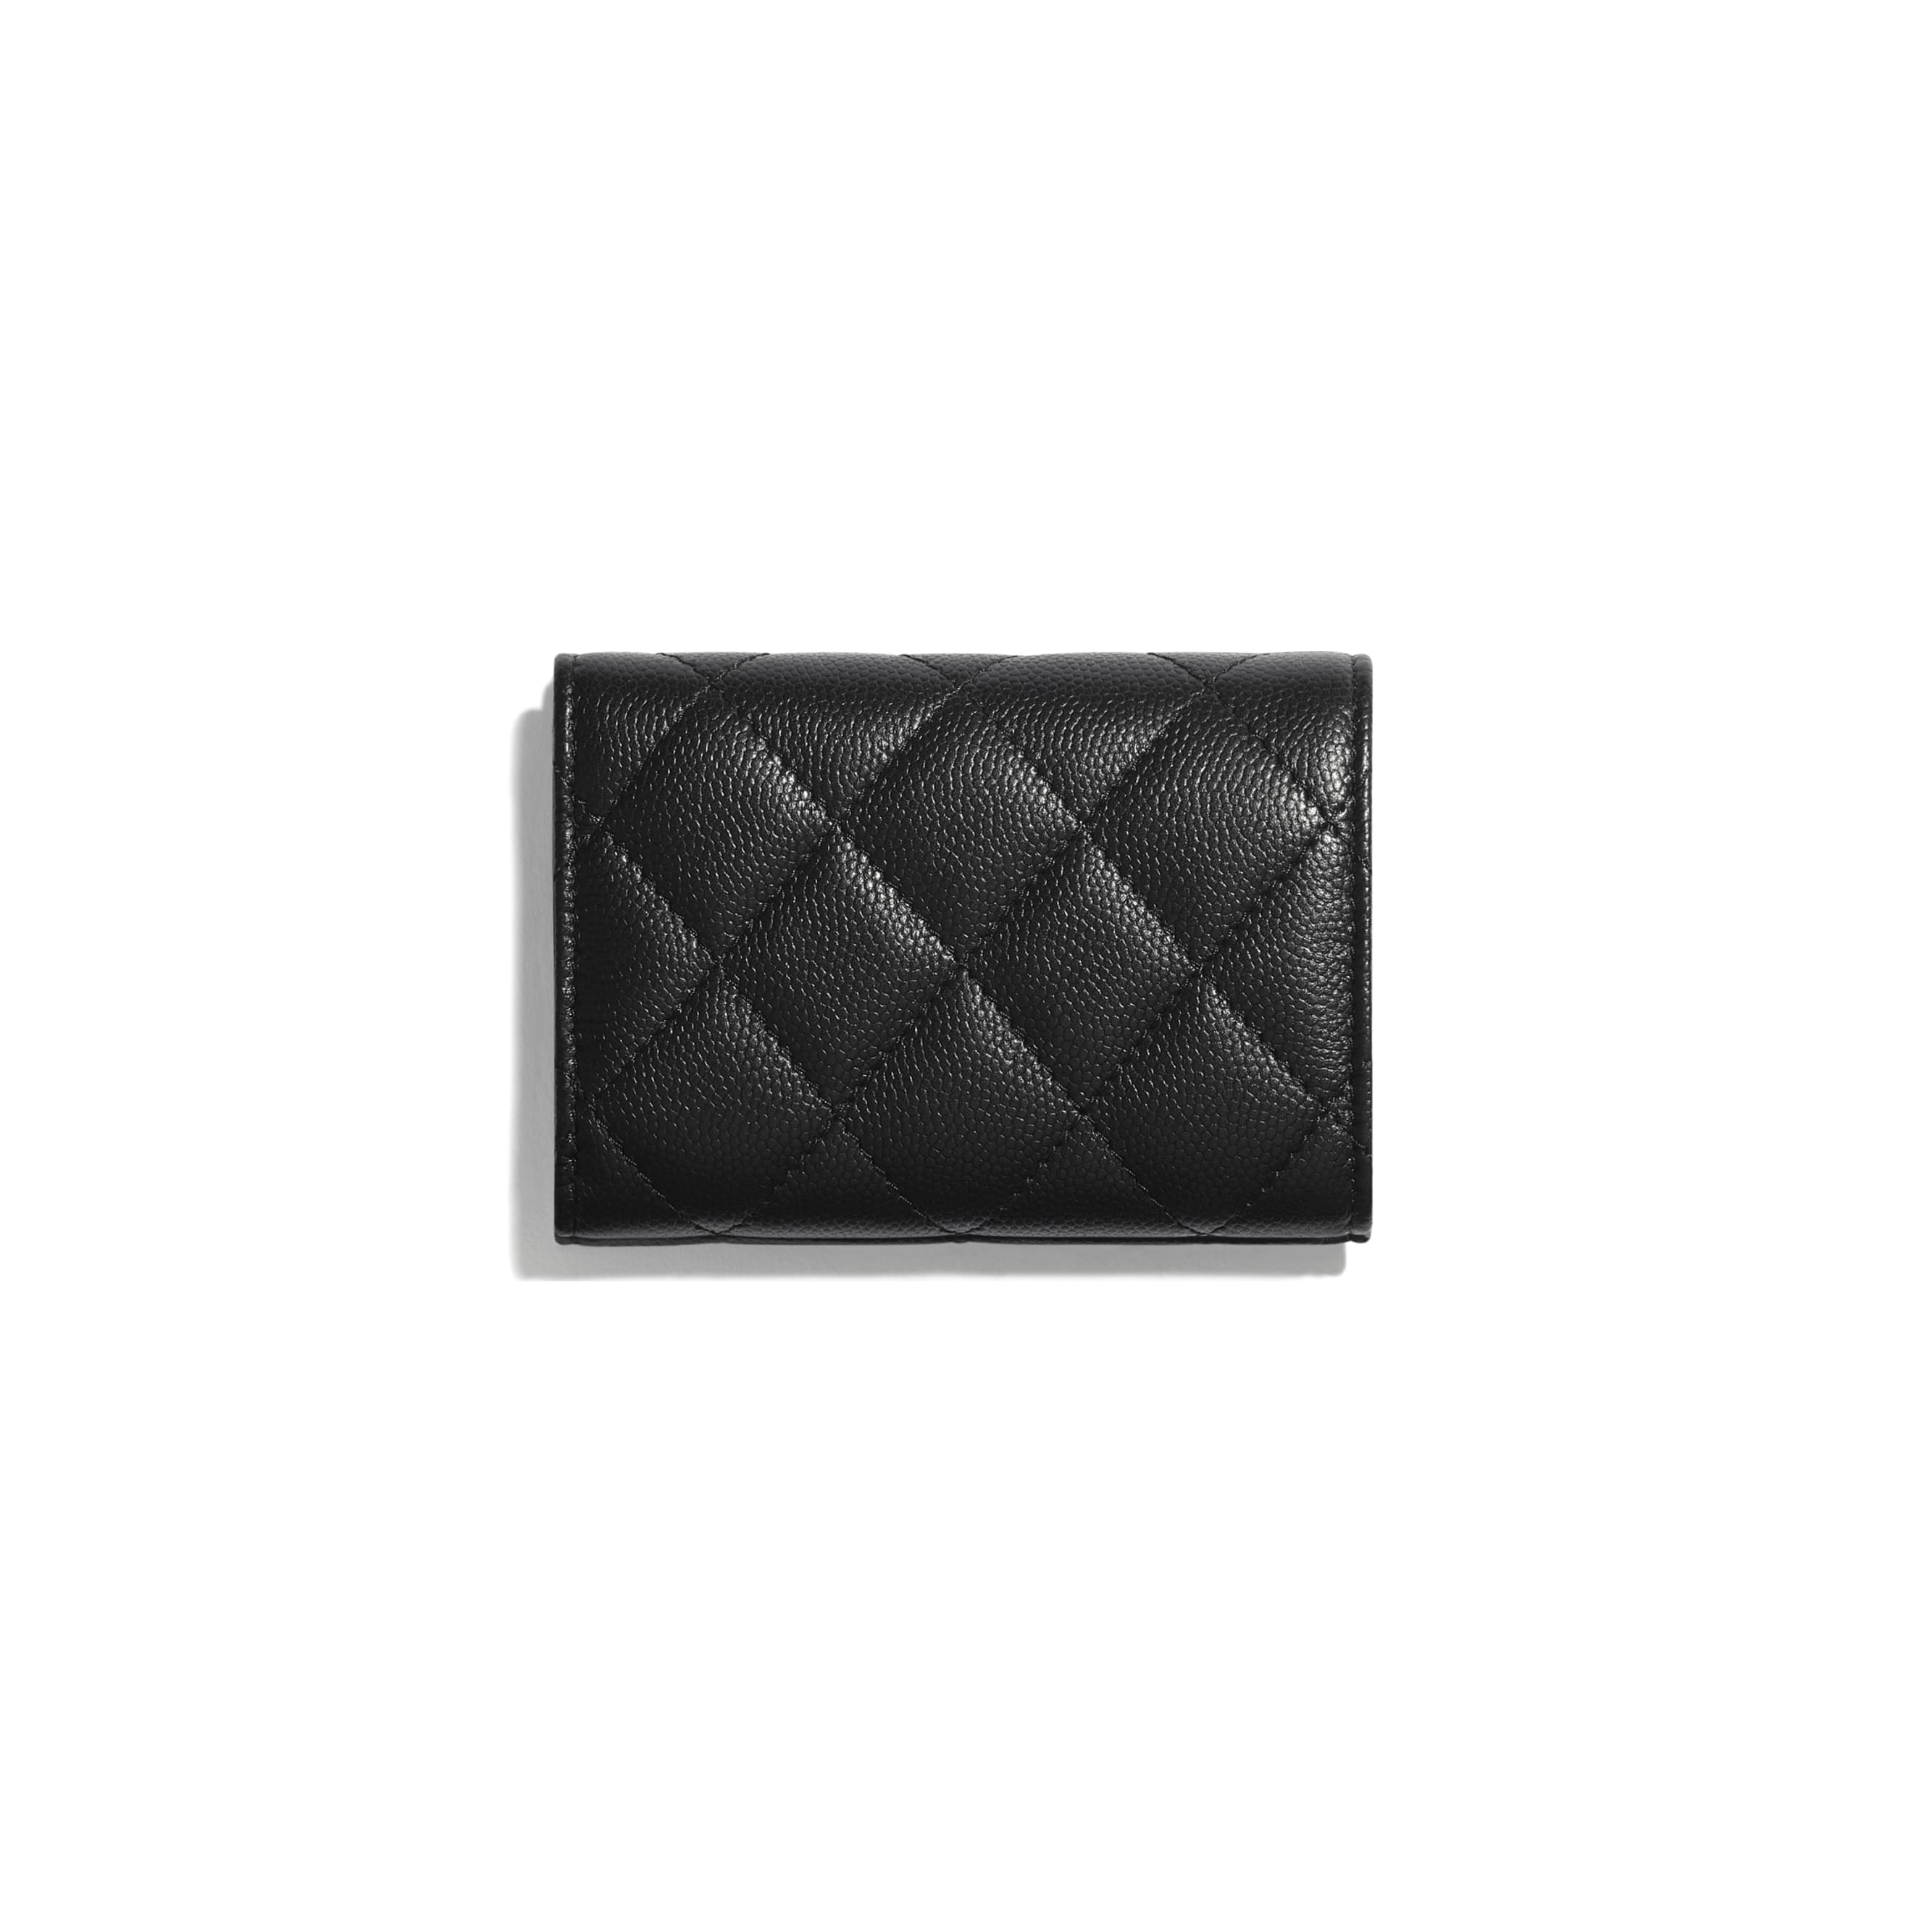 Small Flap Wallet - Black - Grained Calfskin & Lacquered Metal - CHANEL - Alternative view - see standard sized version